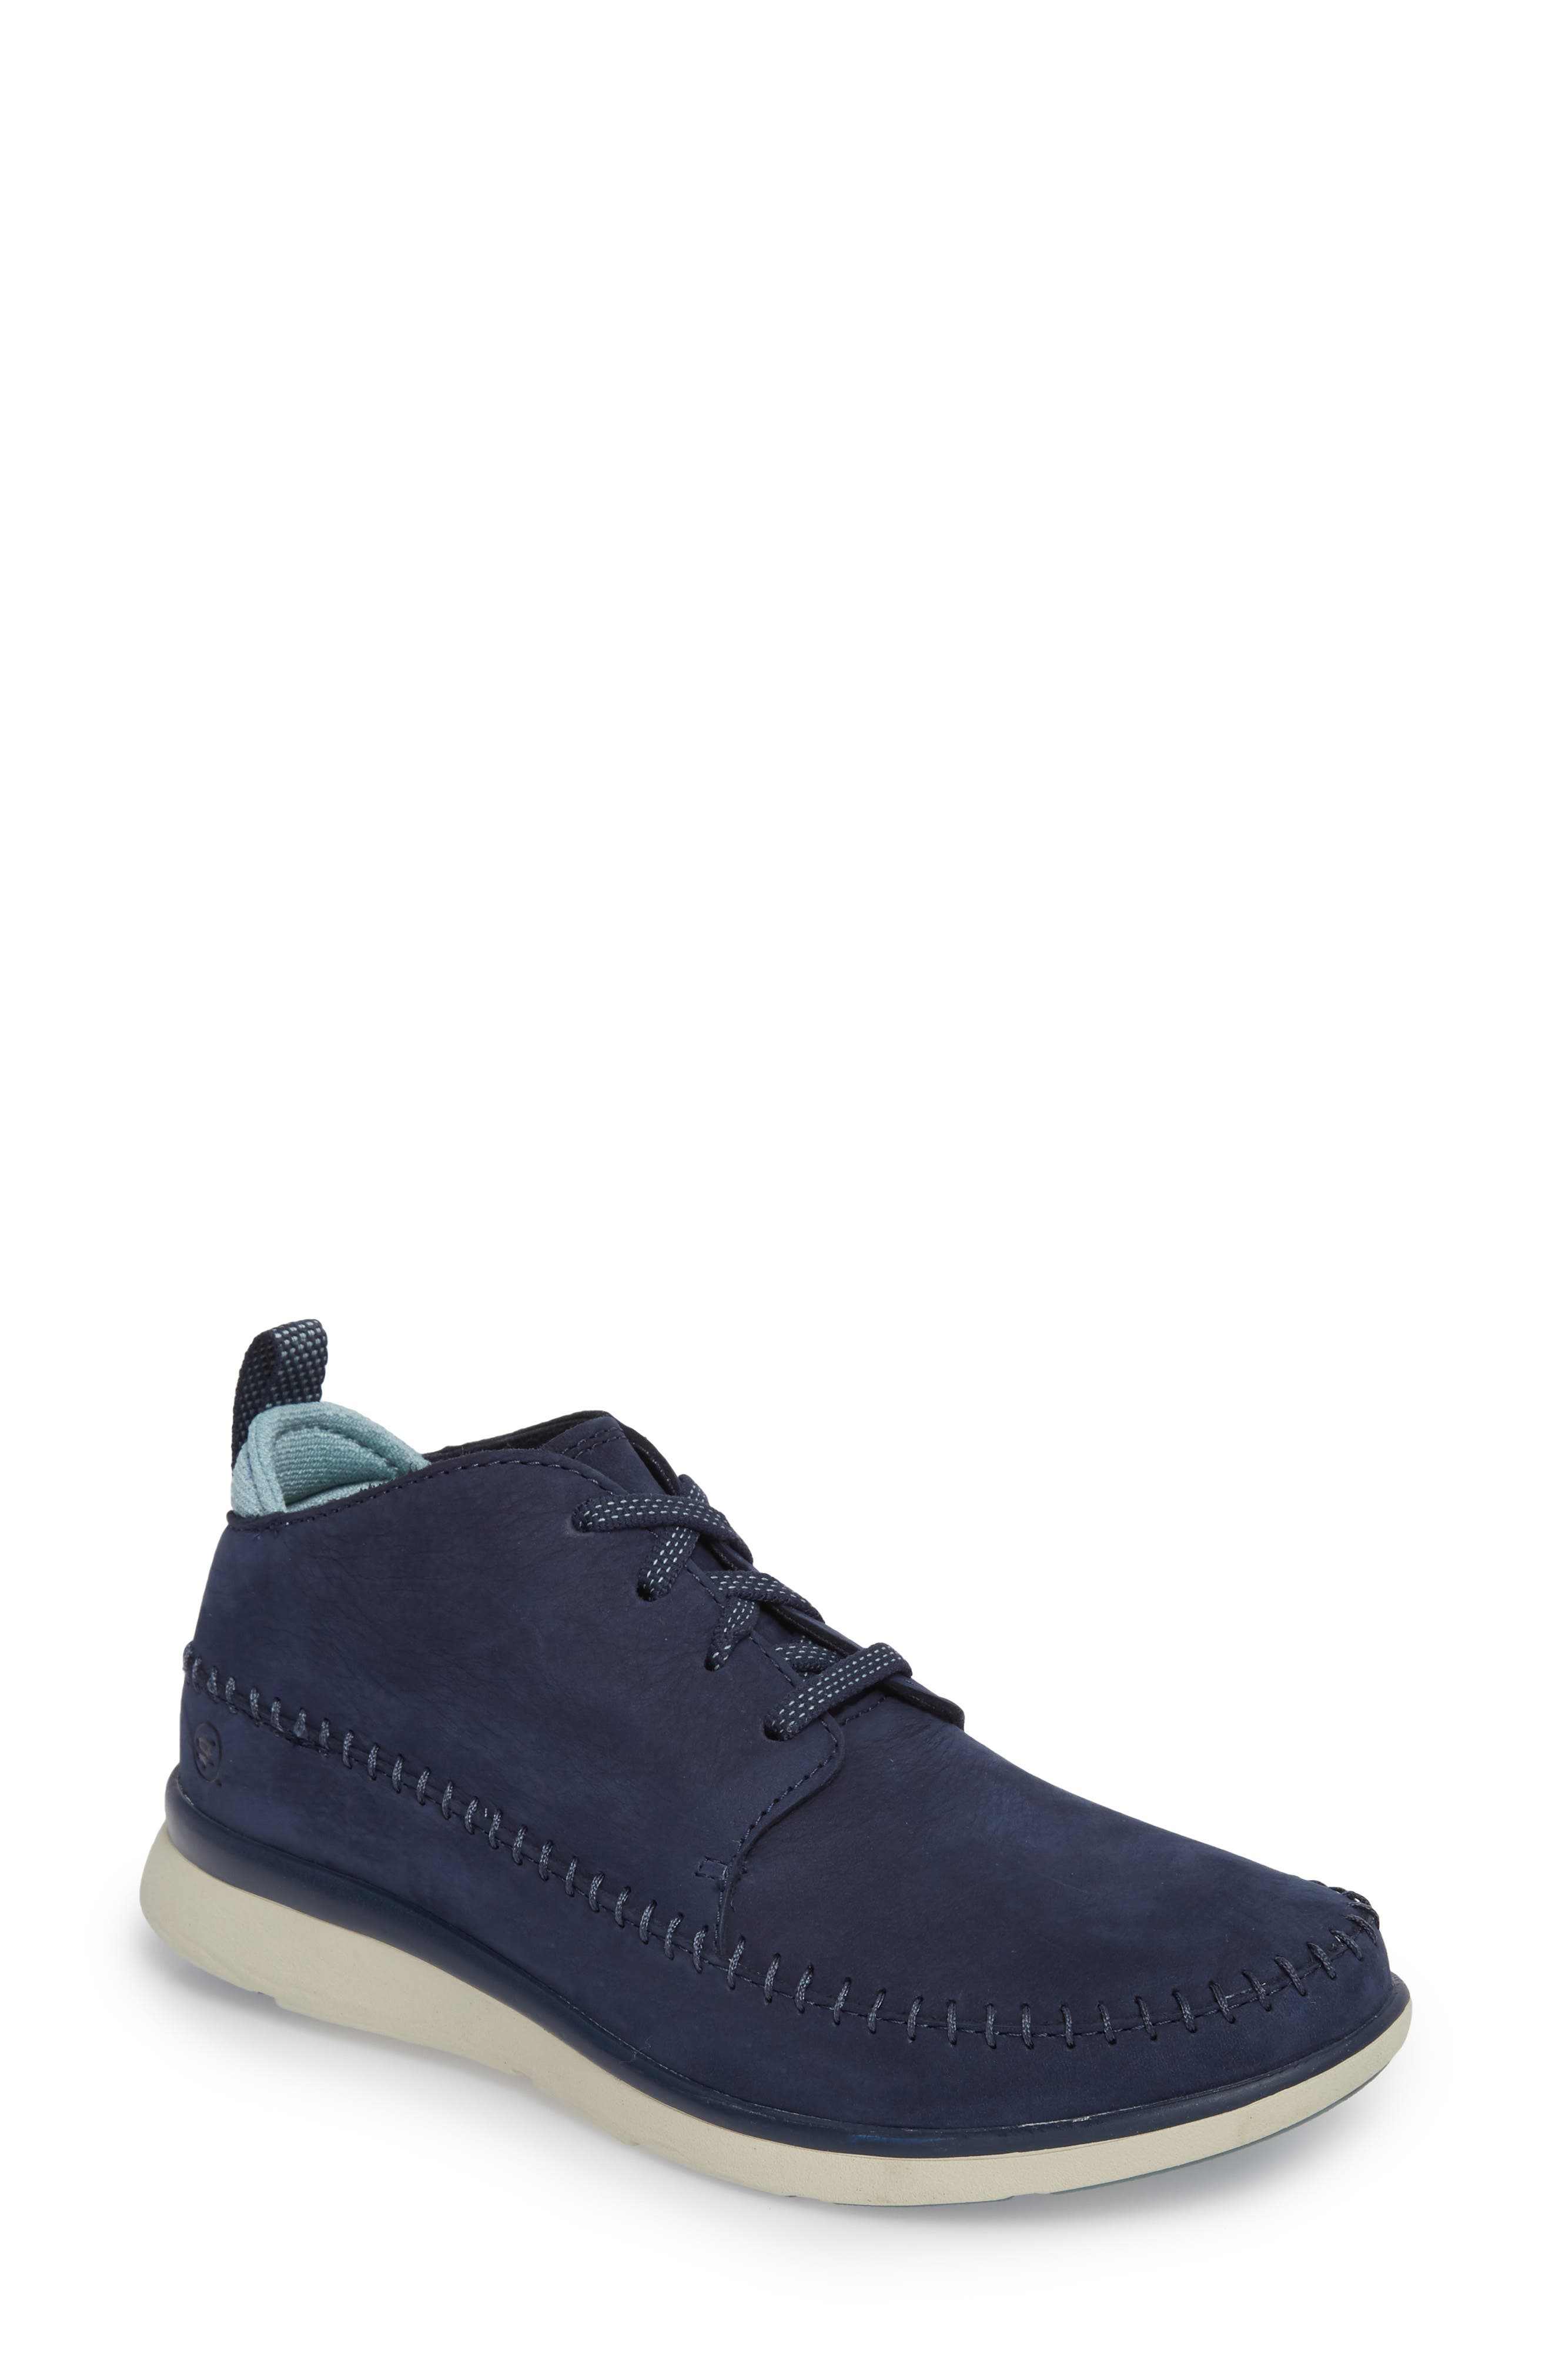 Olympia Lace-Up Sneaker,                             Main thumbnail 1, color,                             Blue Nubuck